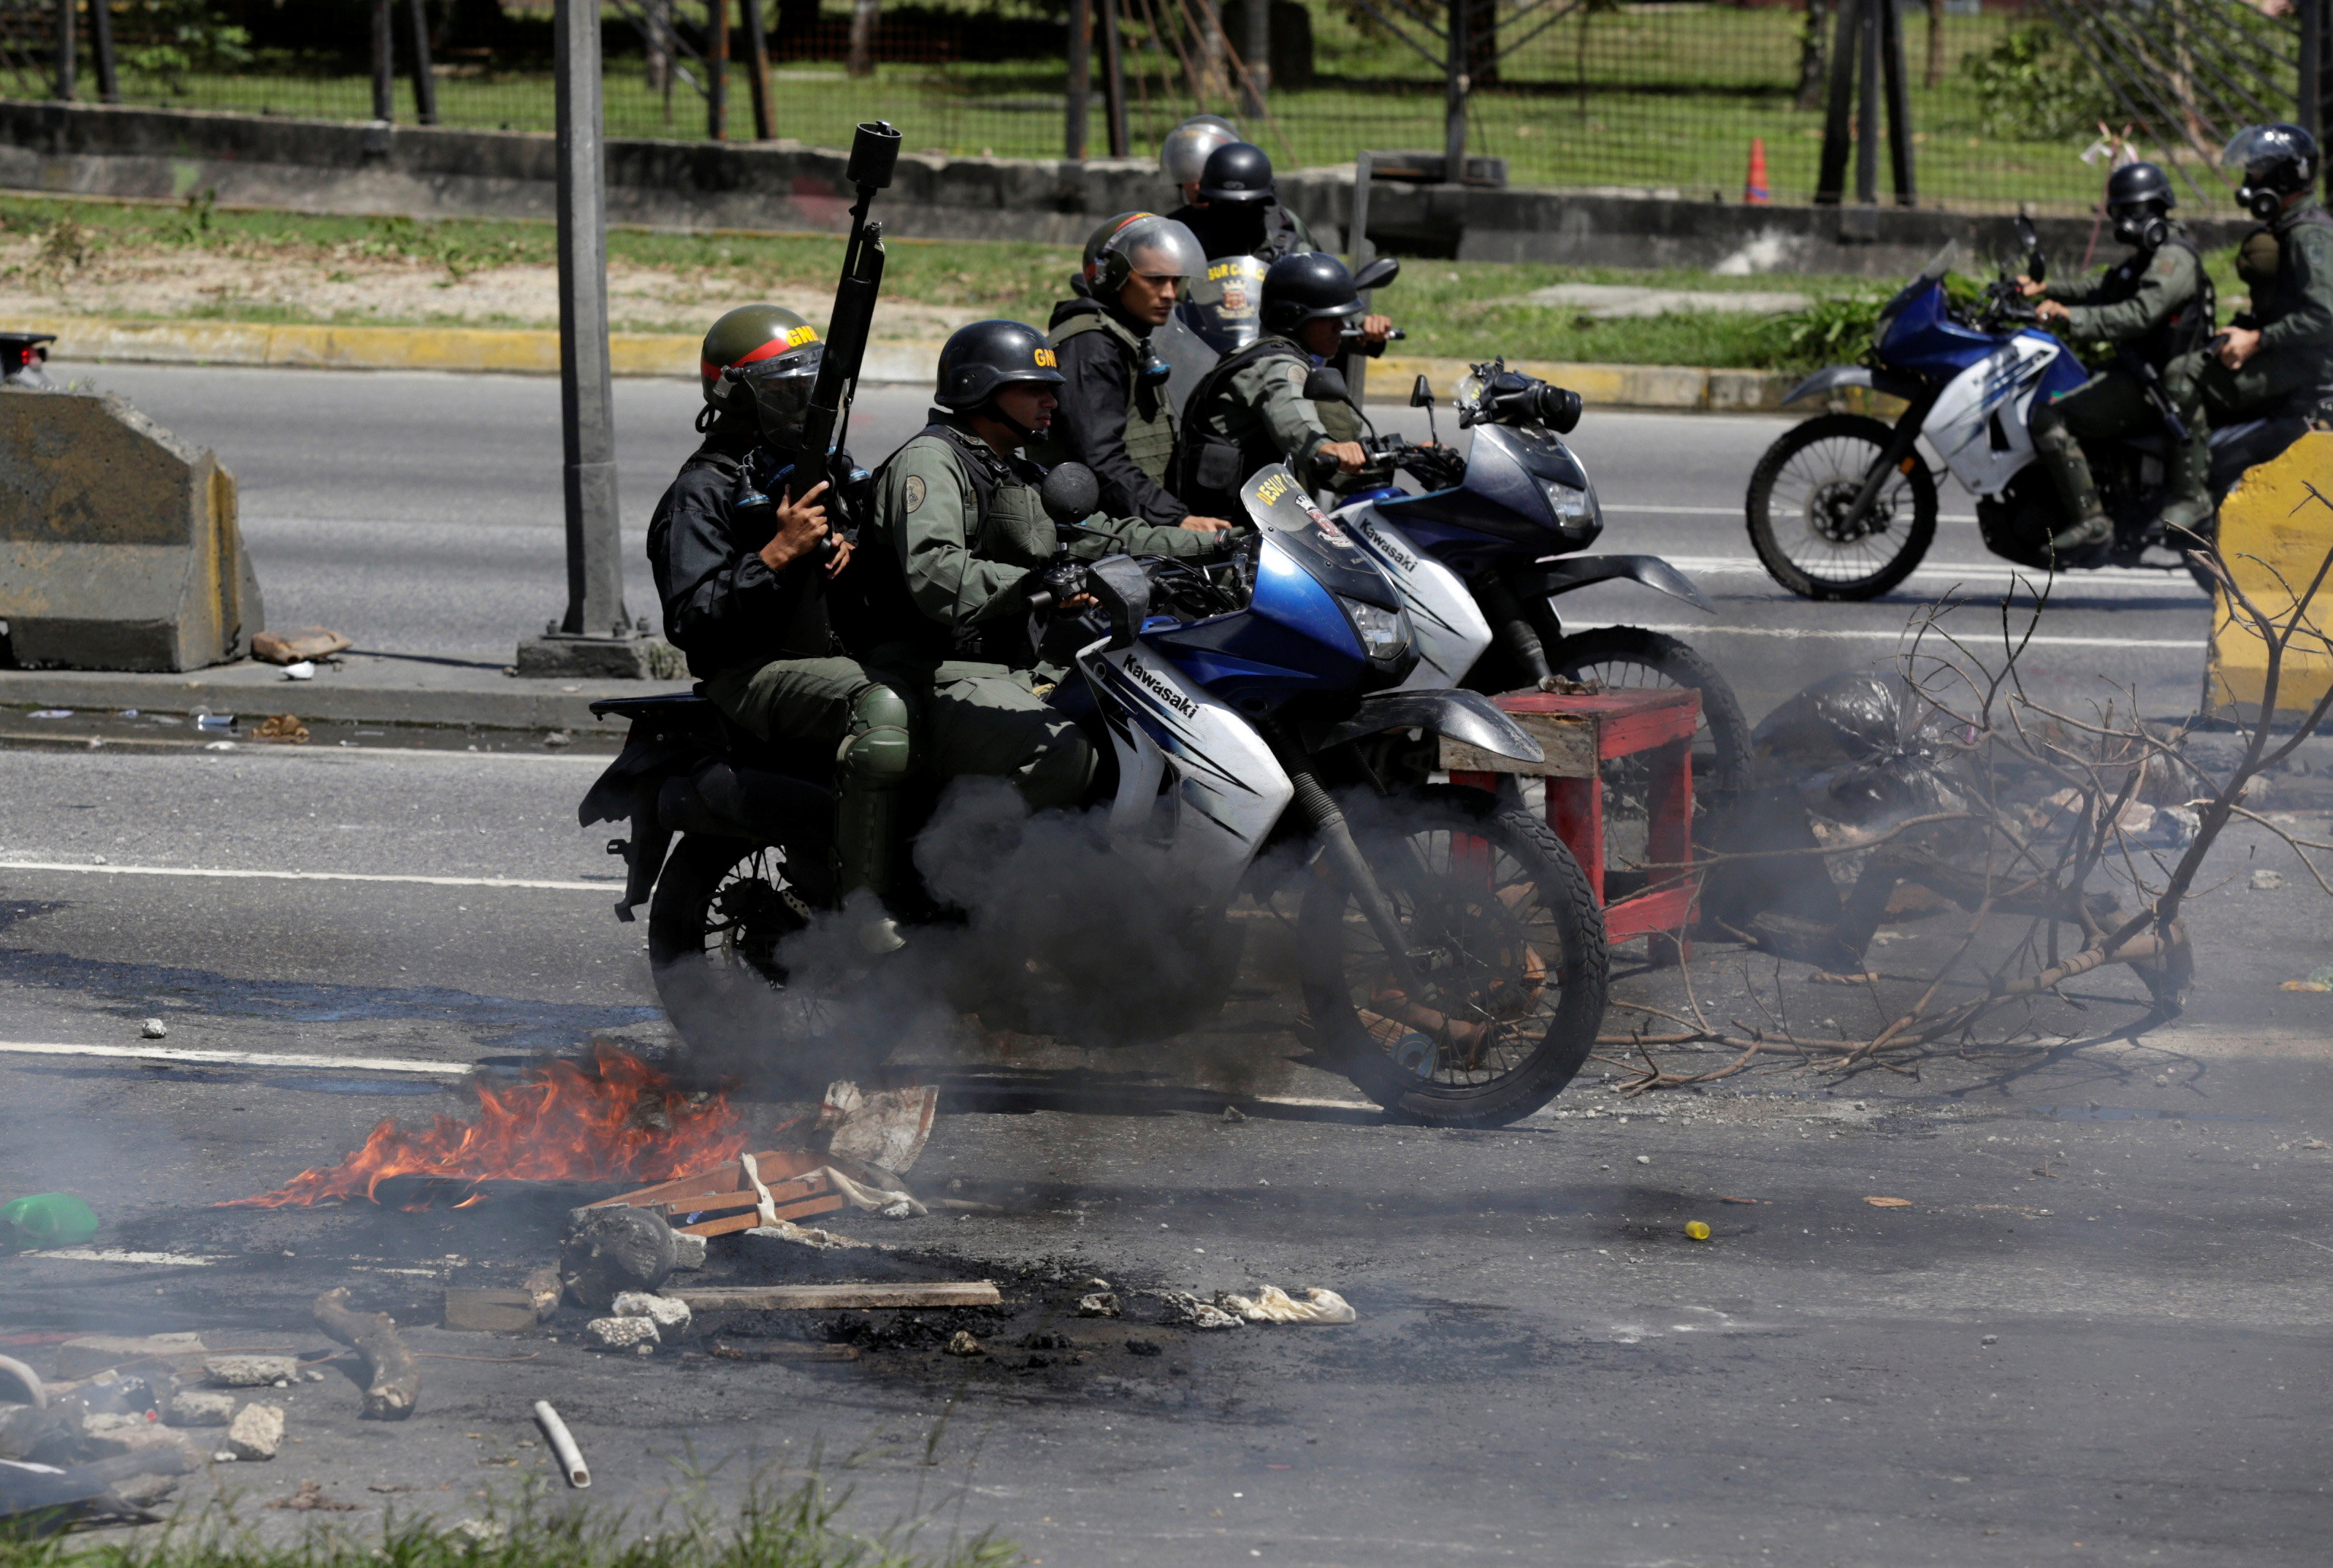 Riot security forces ride on their motorcycles past fire barricades built by opposition supporters rallying against Venezuela's President Nicolas Maduro's government, in Caracas, Venezuela July 4, 2017.  REUTERS/Marco Bello